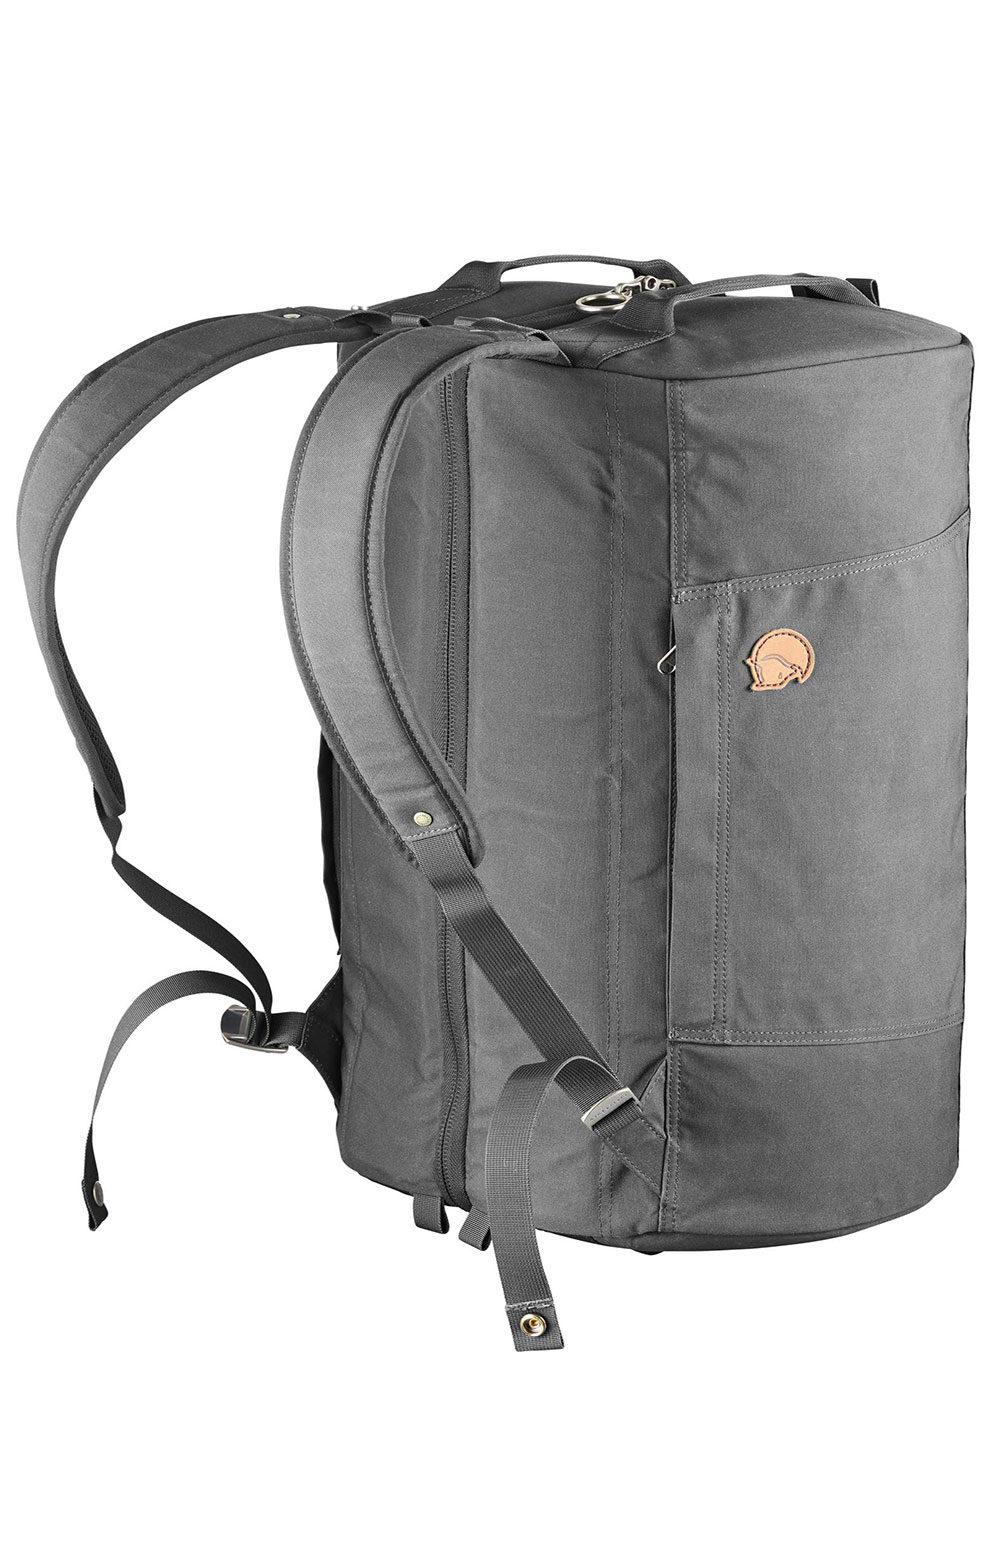 Splitpack Large Backpack - Super Grey